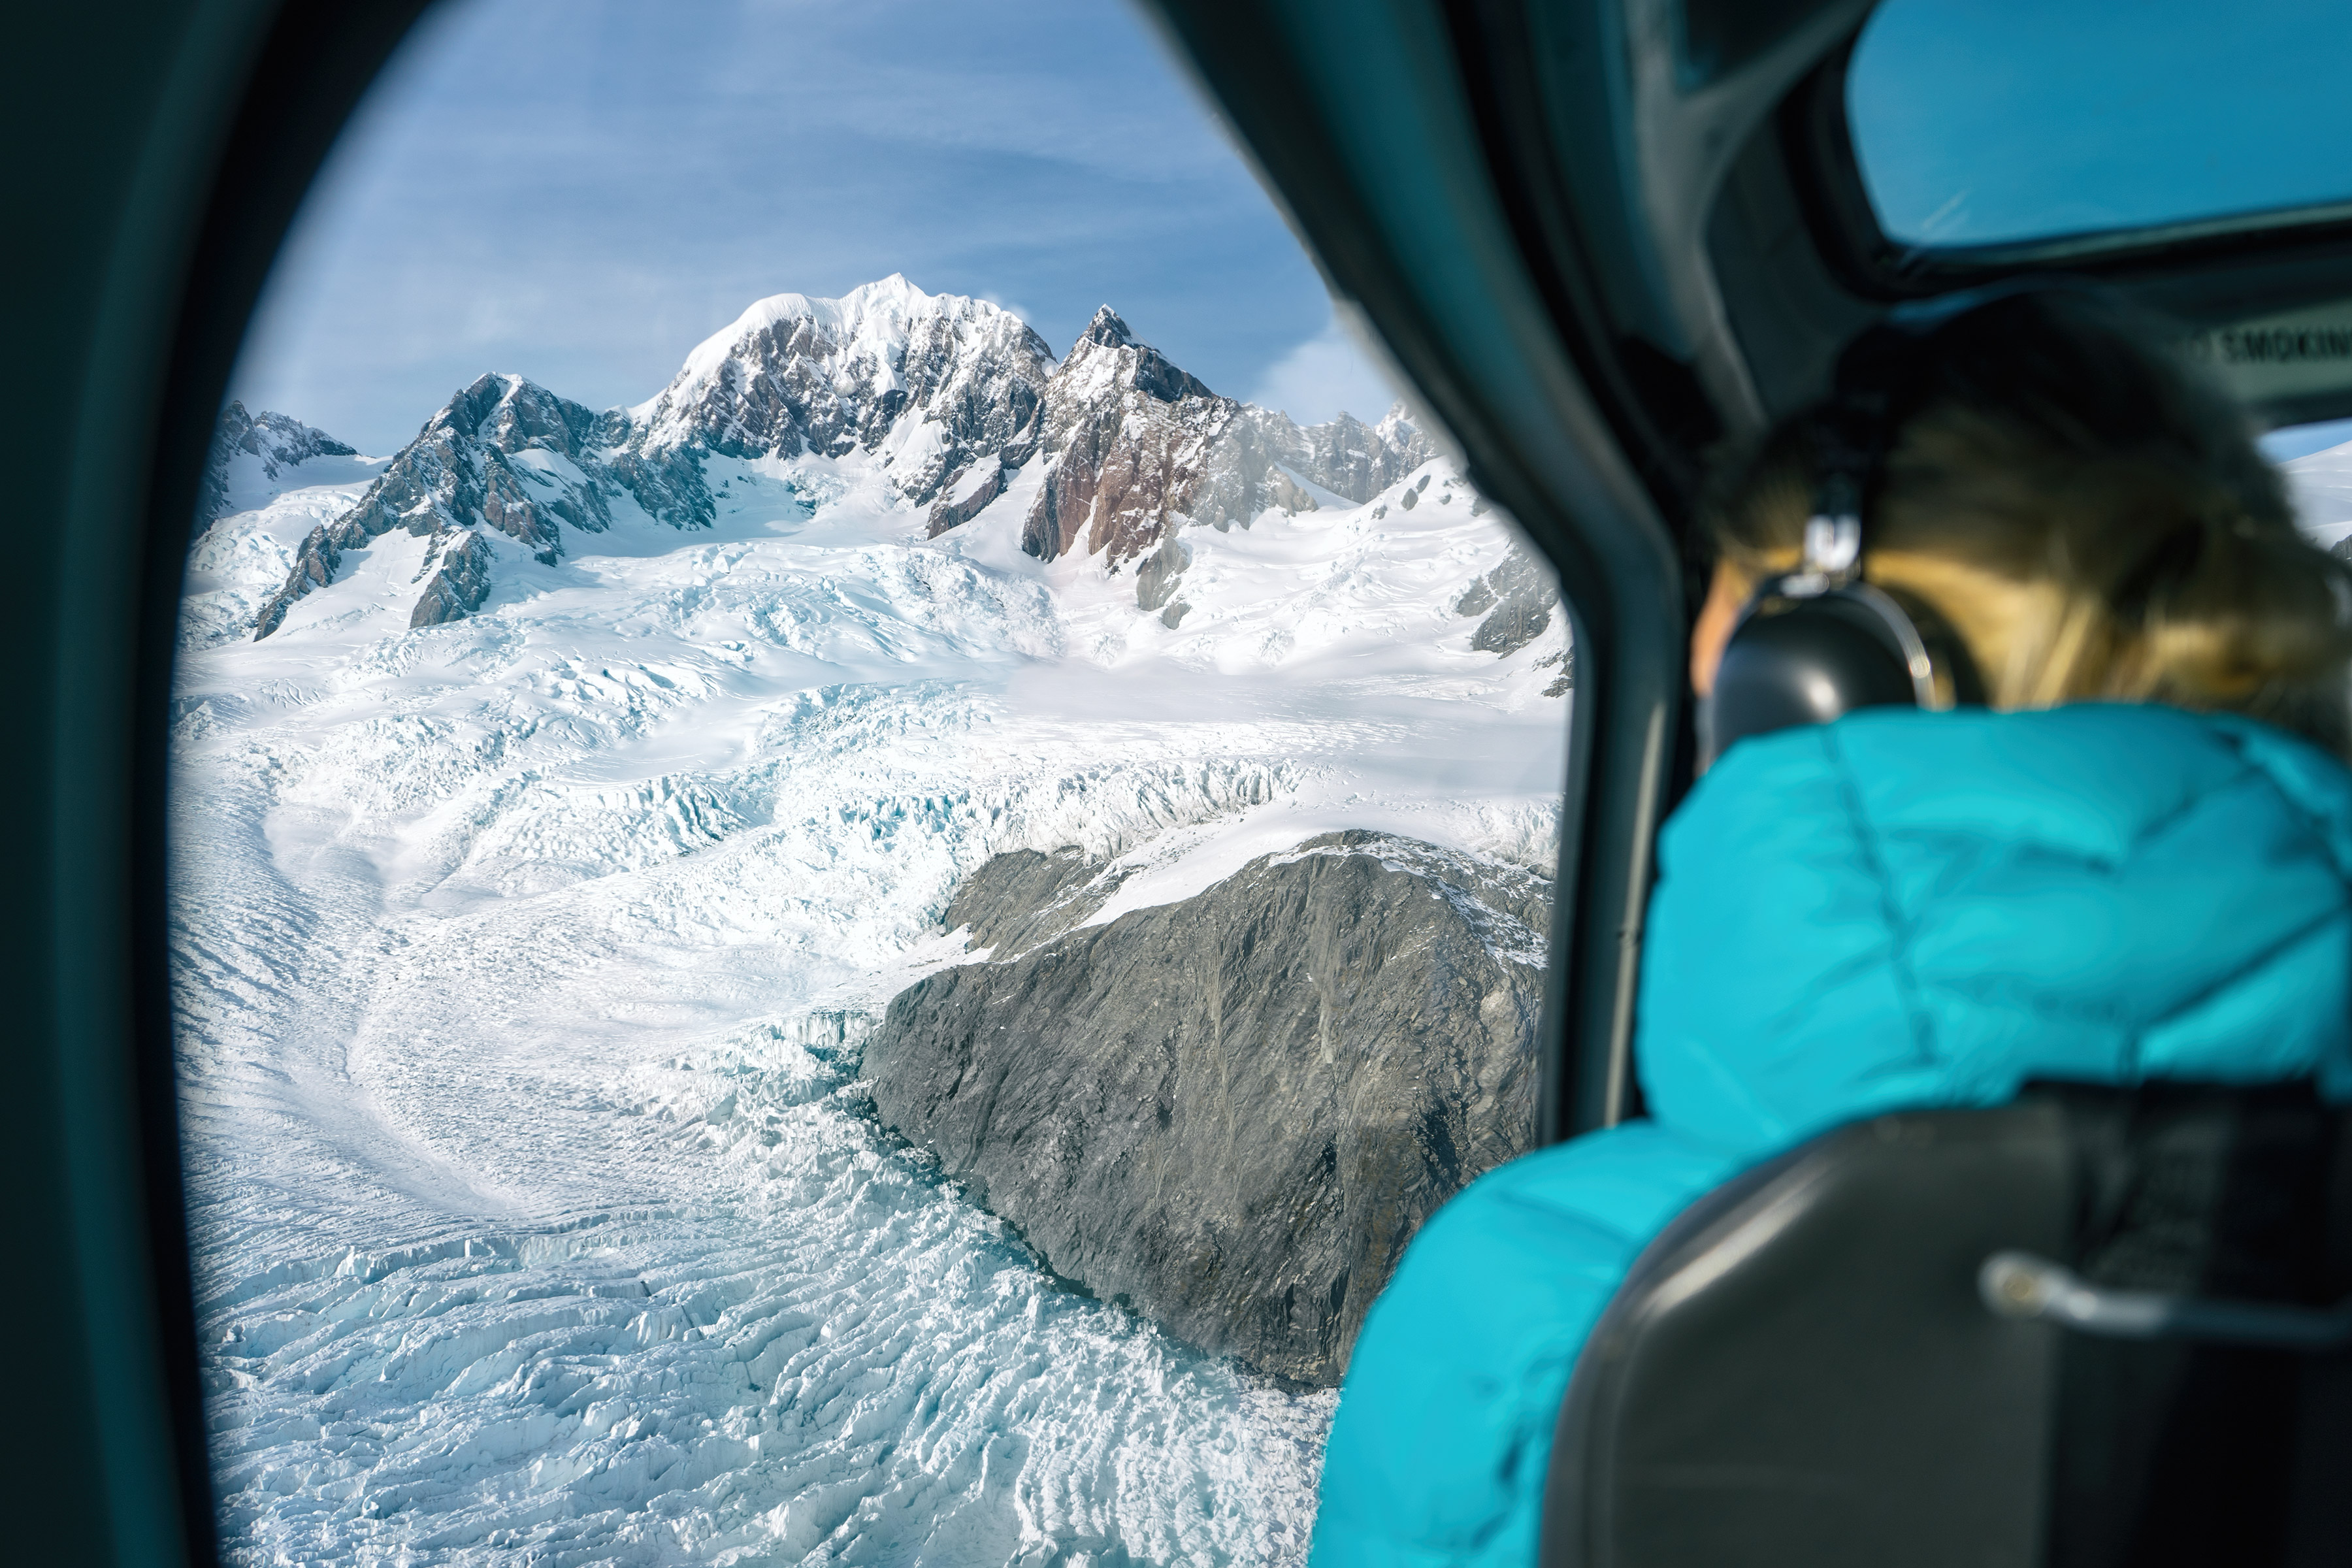 Southern Alps From Above View Of Top Of Fox Glacier And Mountains From Helicopter